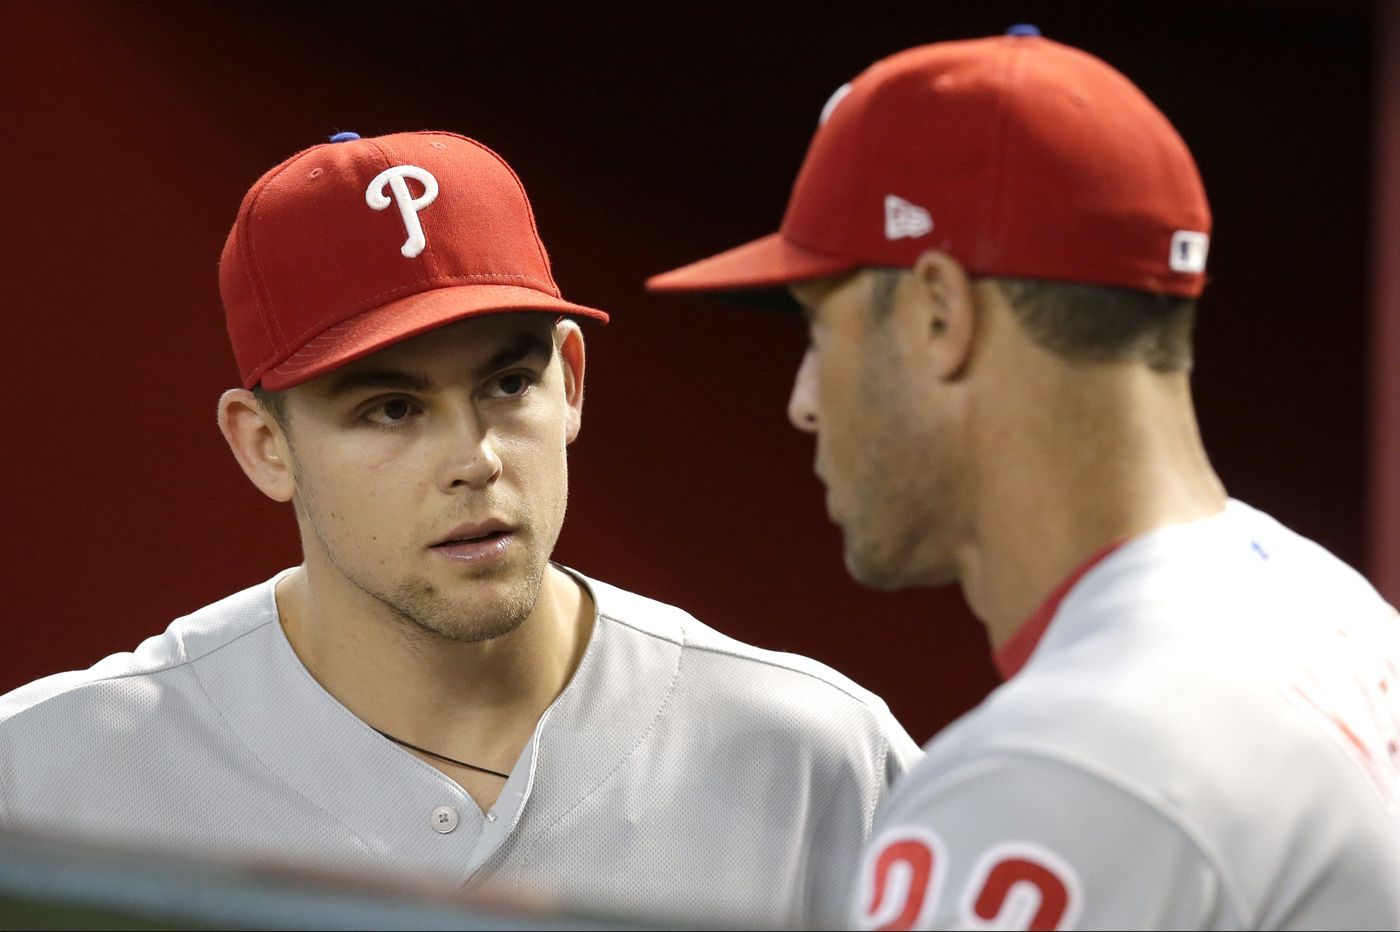 Phillies rookie Scott Kingery gets start at shortstop; his struggles at plate continue